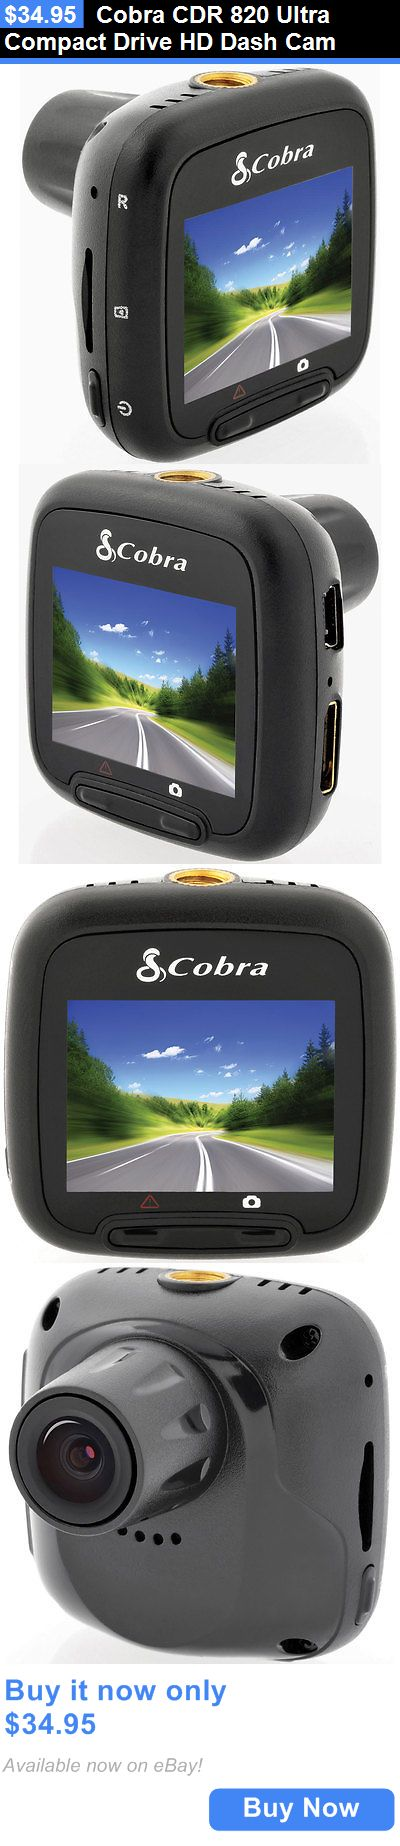 Other Car Electronics Accs: Cobra Cdr 820 Ultra Compact Drive Hd Dash Cam BUY IT NOW ONLY: $34.95